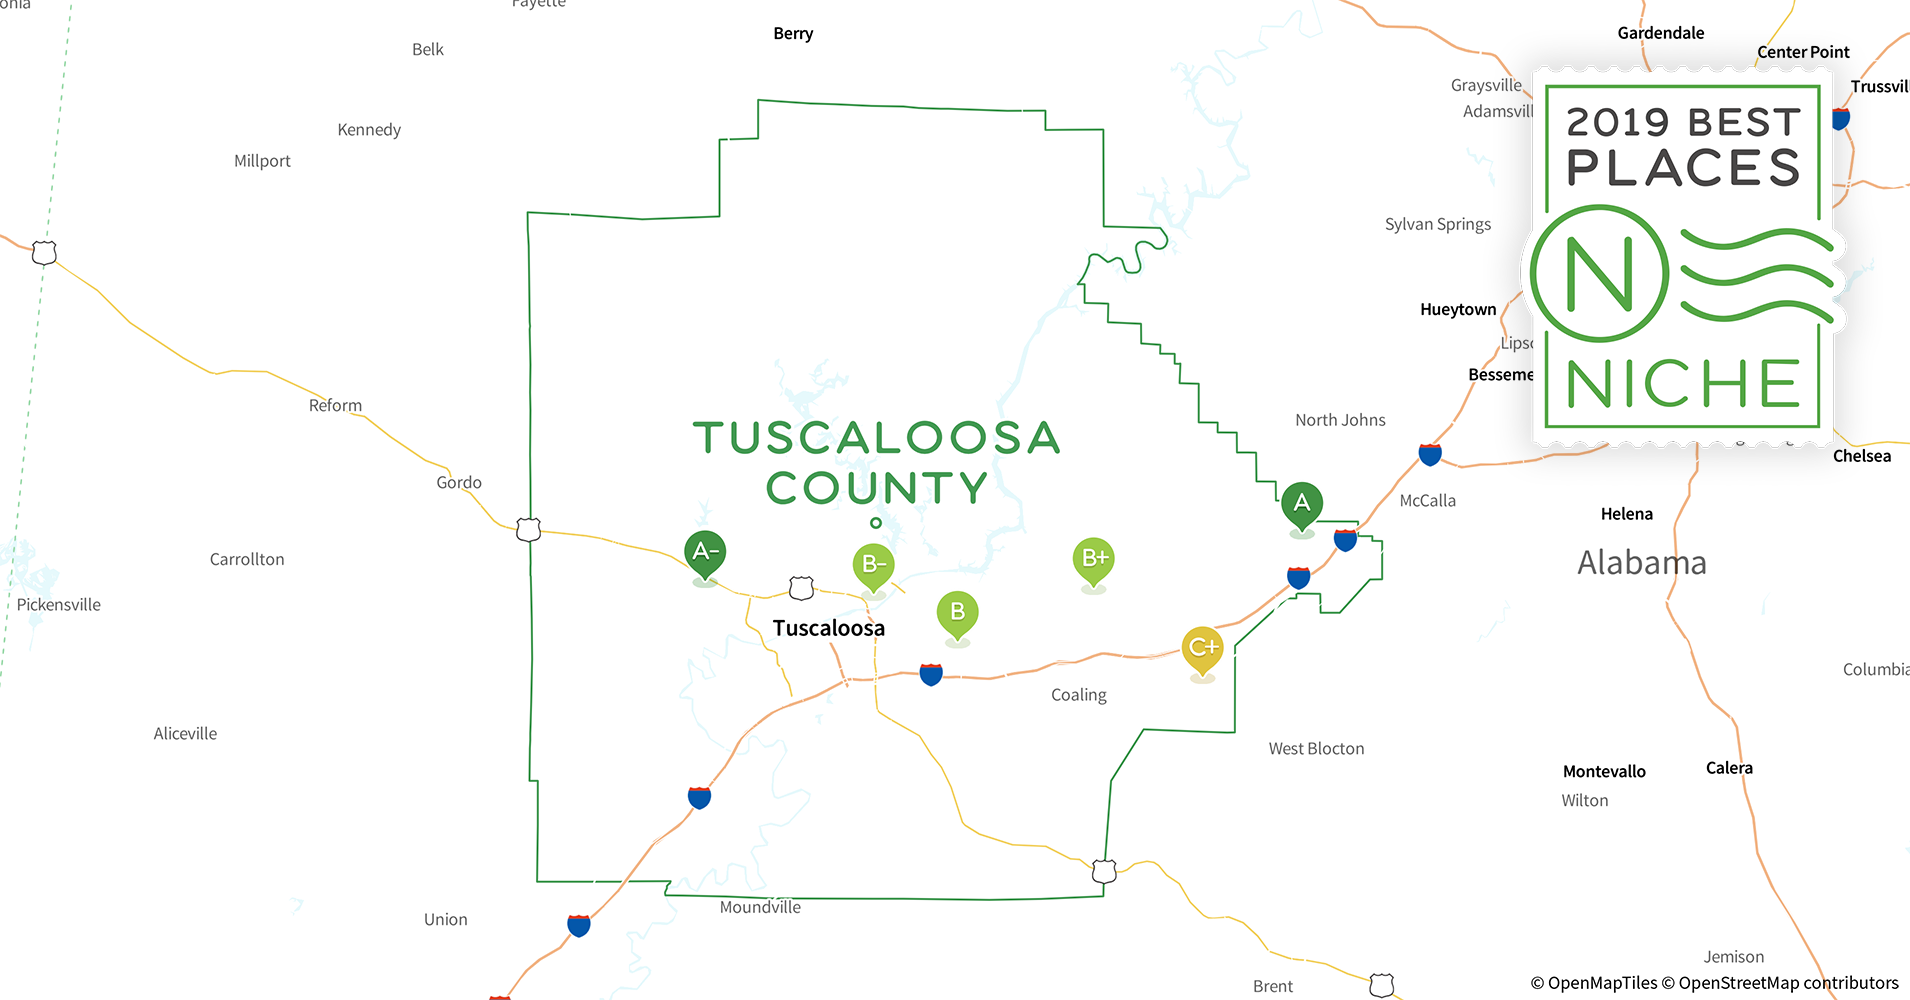 2019 Safe Places to Live in Tuscaloosa County, AL - Niche In Tuscaloosa County On Map on wilmington county map, tuscaloosa murder, dahlonega county map, geneva county map, charlottesville county map, tuscaloosa city, marion county map, ann arbor county map, lake stevens county map, bowling green county map, winston county map, alabama map, high point county map, south bend county map, little rock county map, fort wayne county map, beverly hills county map, crenshaw county map, northwest ga county map, dayton county map,